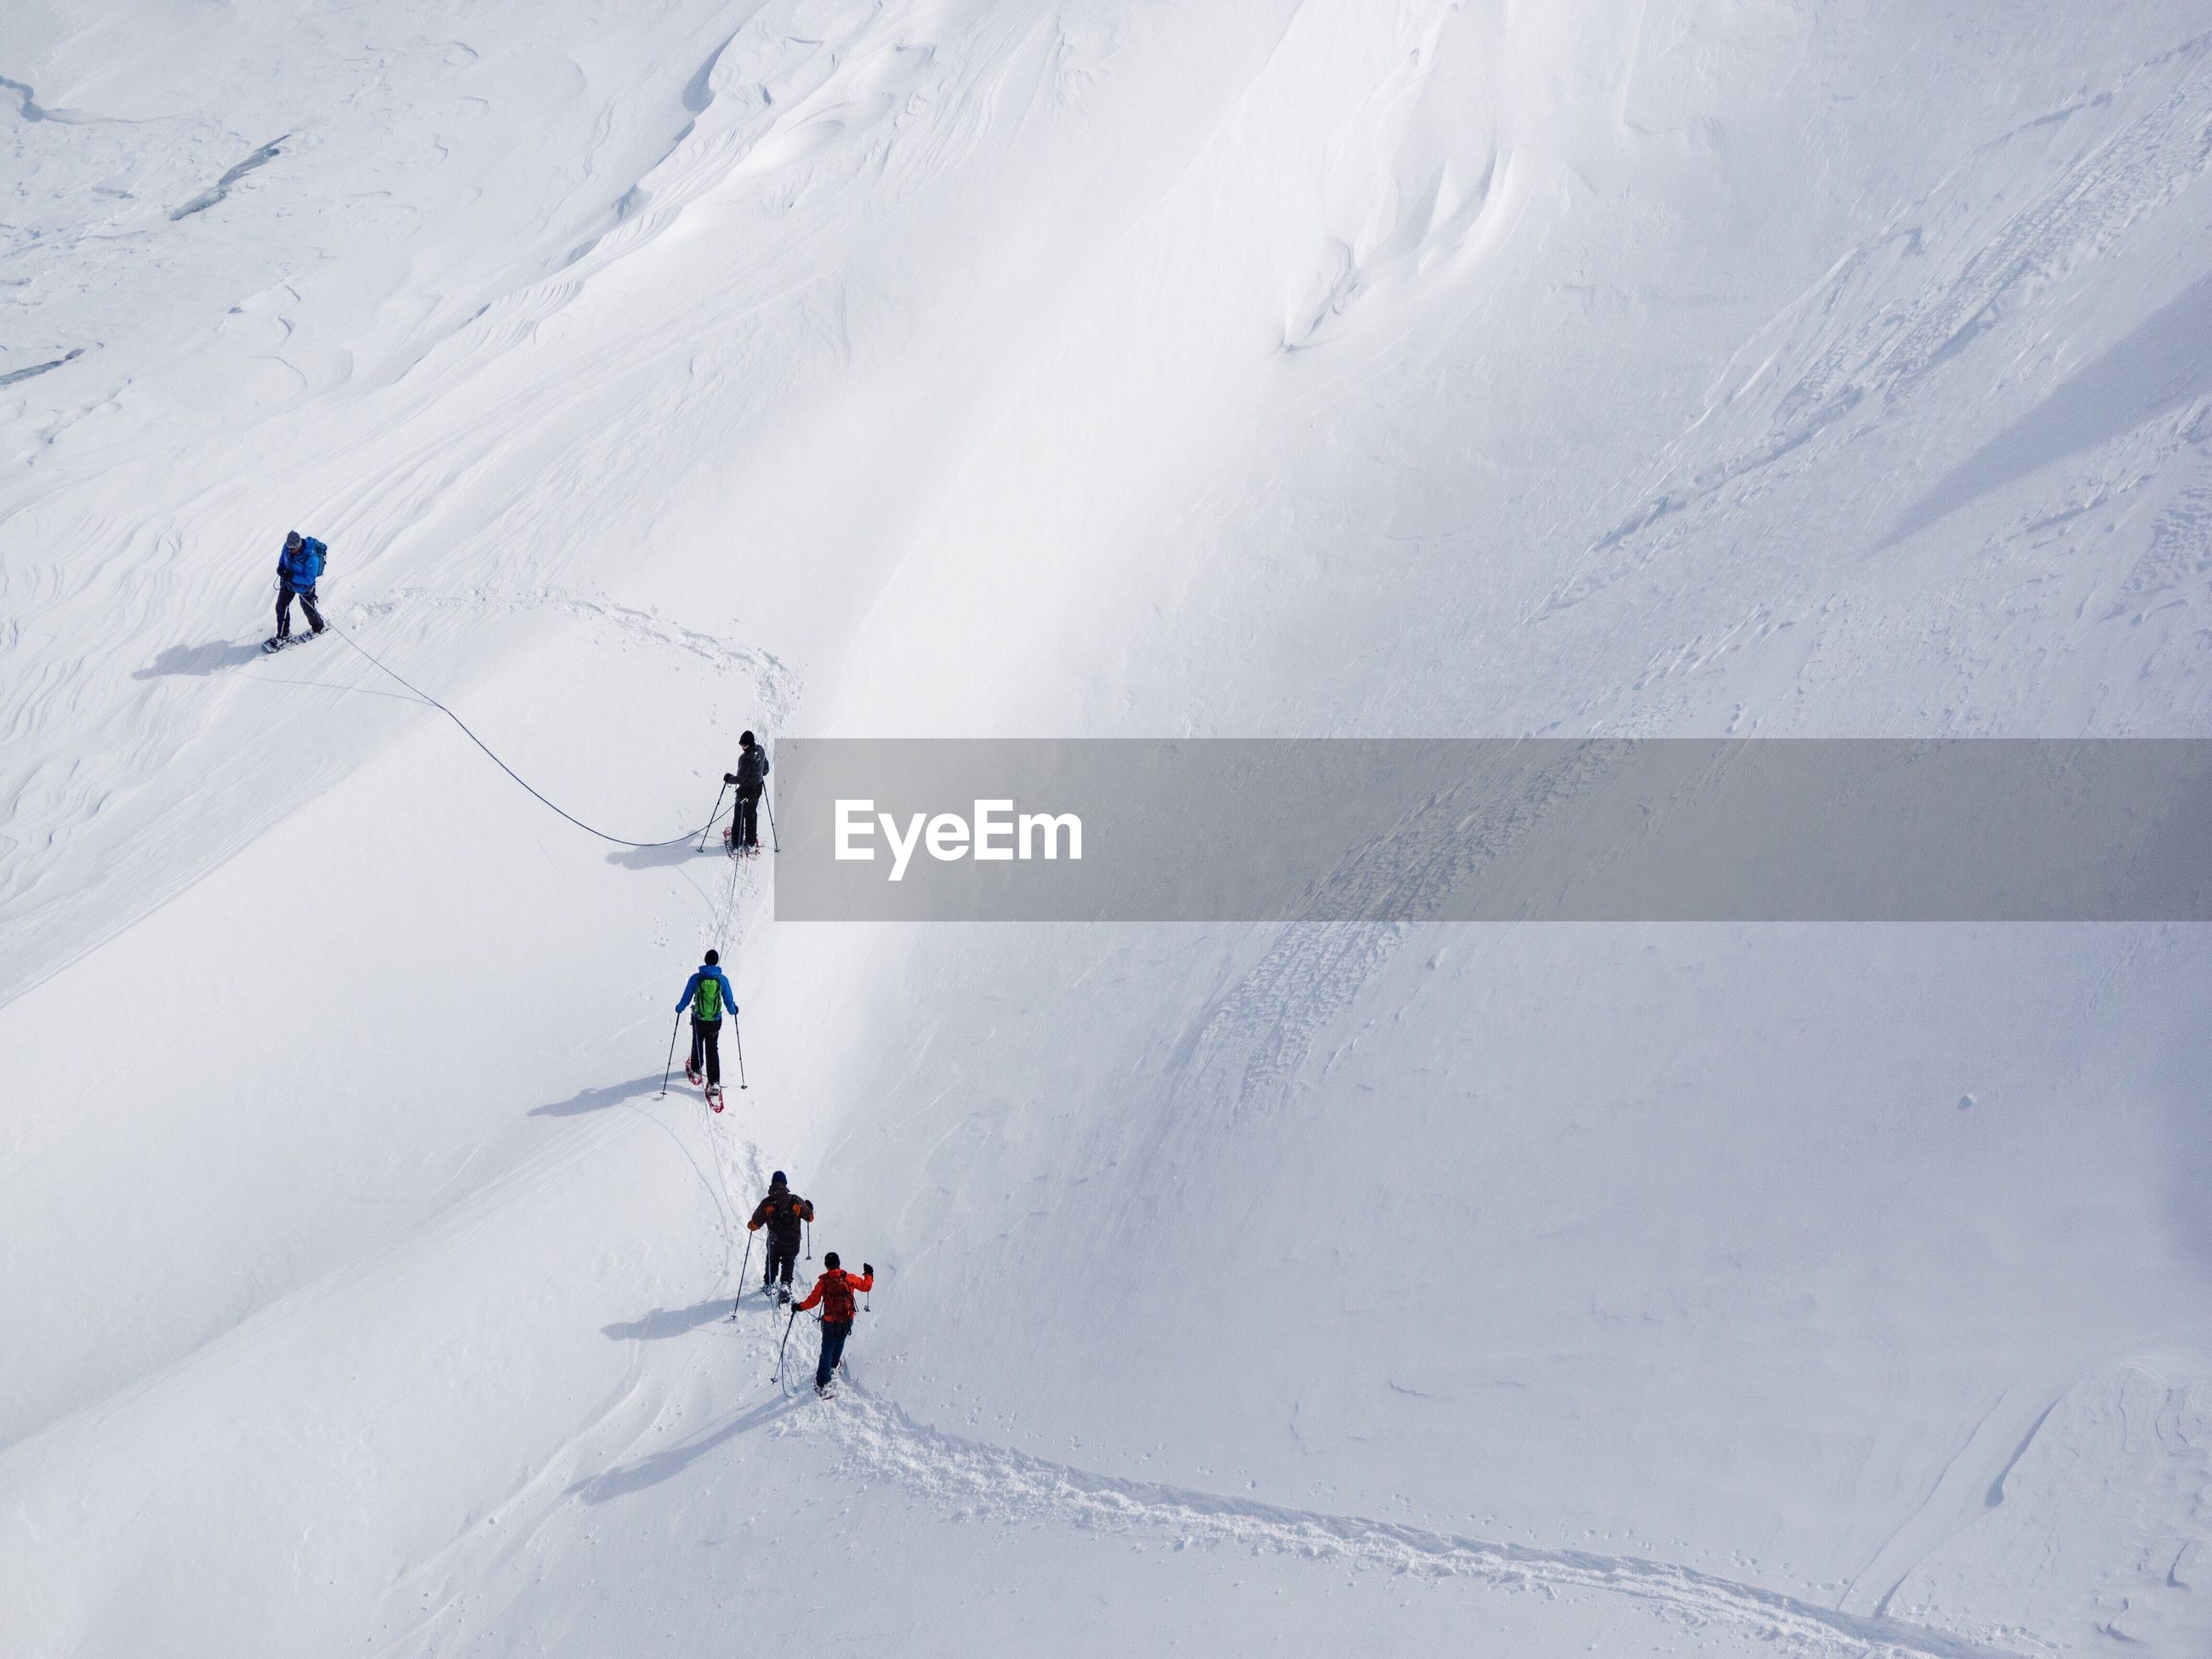 snow, sport, cold temperature, winter, winter sport, adventure, skiing, leisure activity, mountain, white color, real people, vacations, beauty in nature, holiday, trip, mountain range, scenics - nature, people, lifestyles, freedom, ski holiday, snowcapped mountain, outdoors